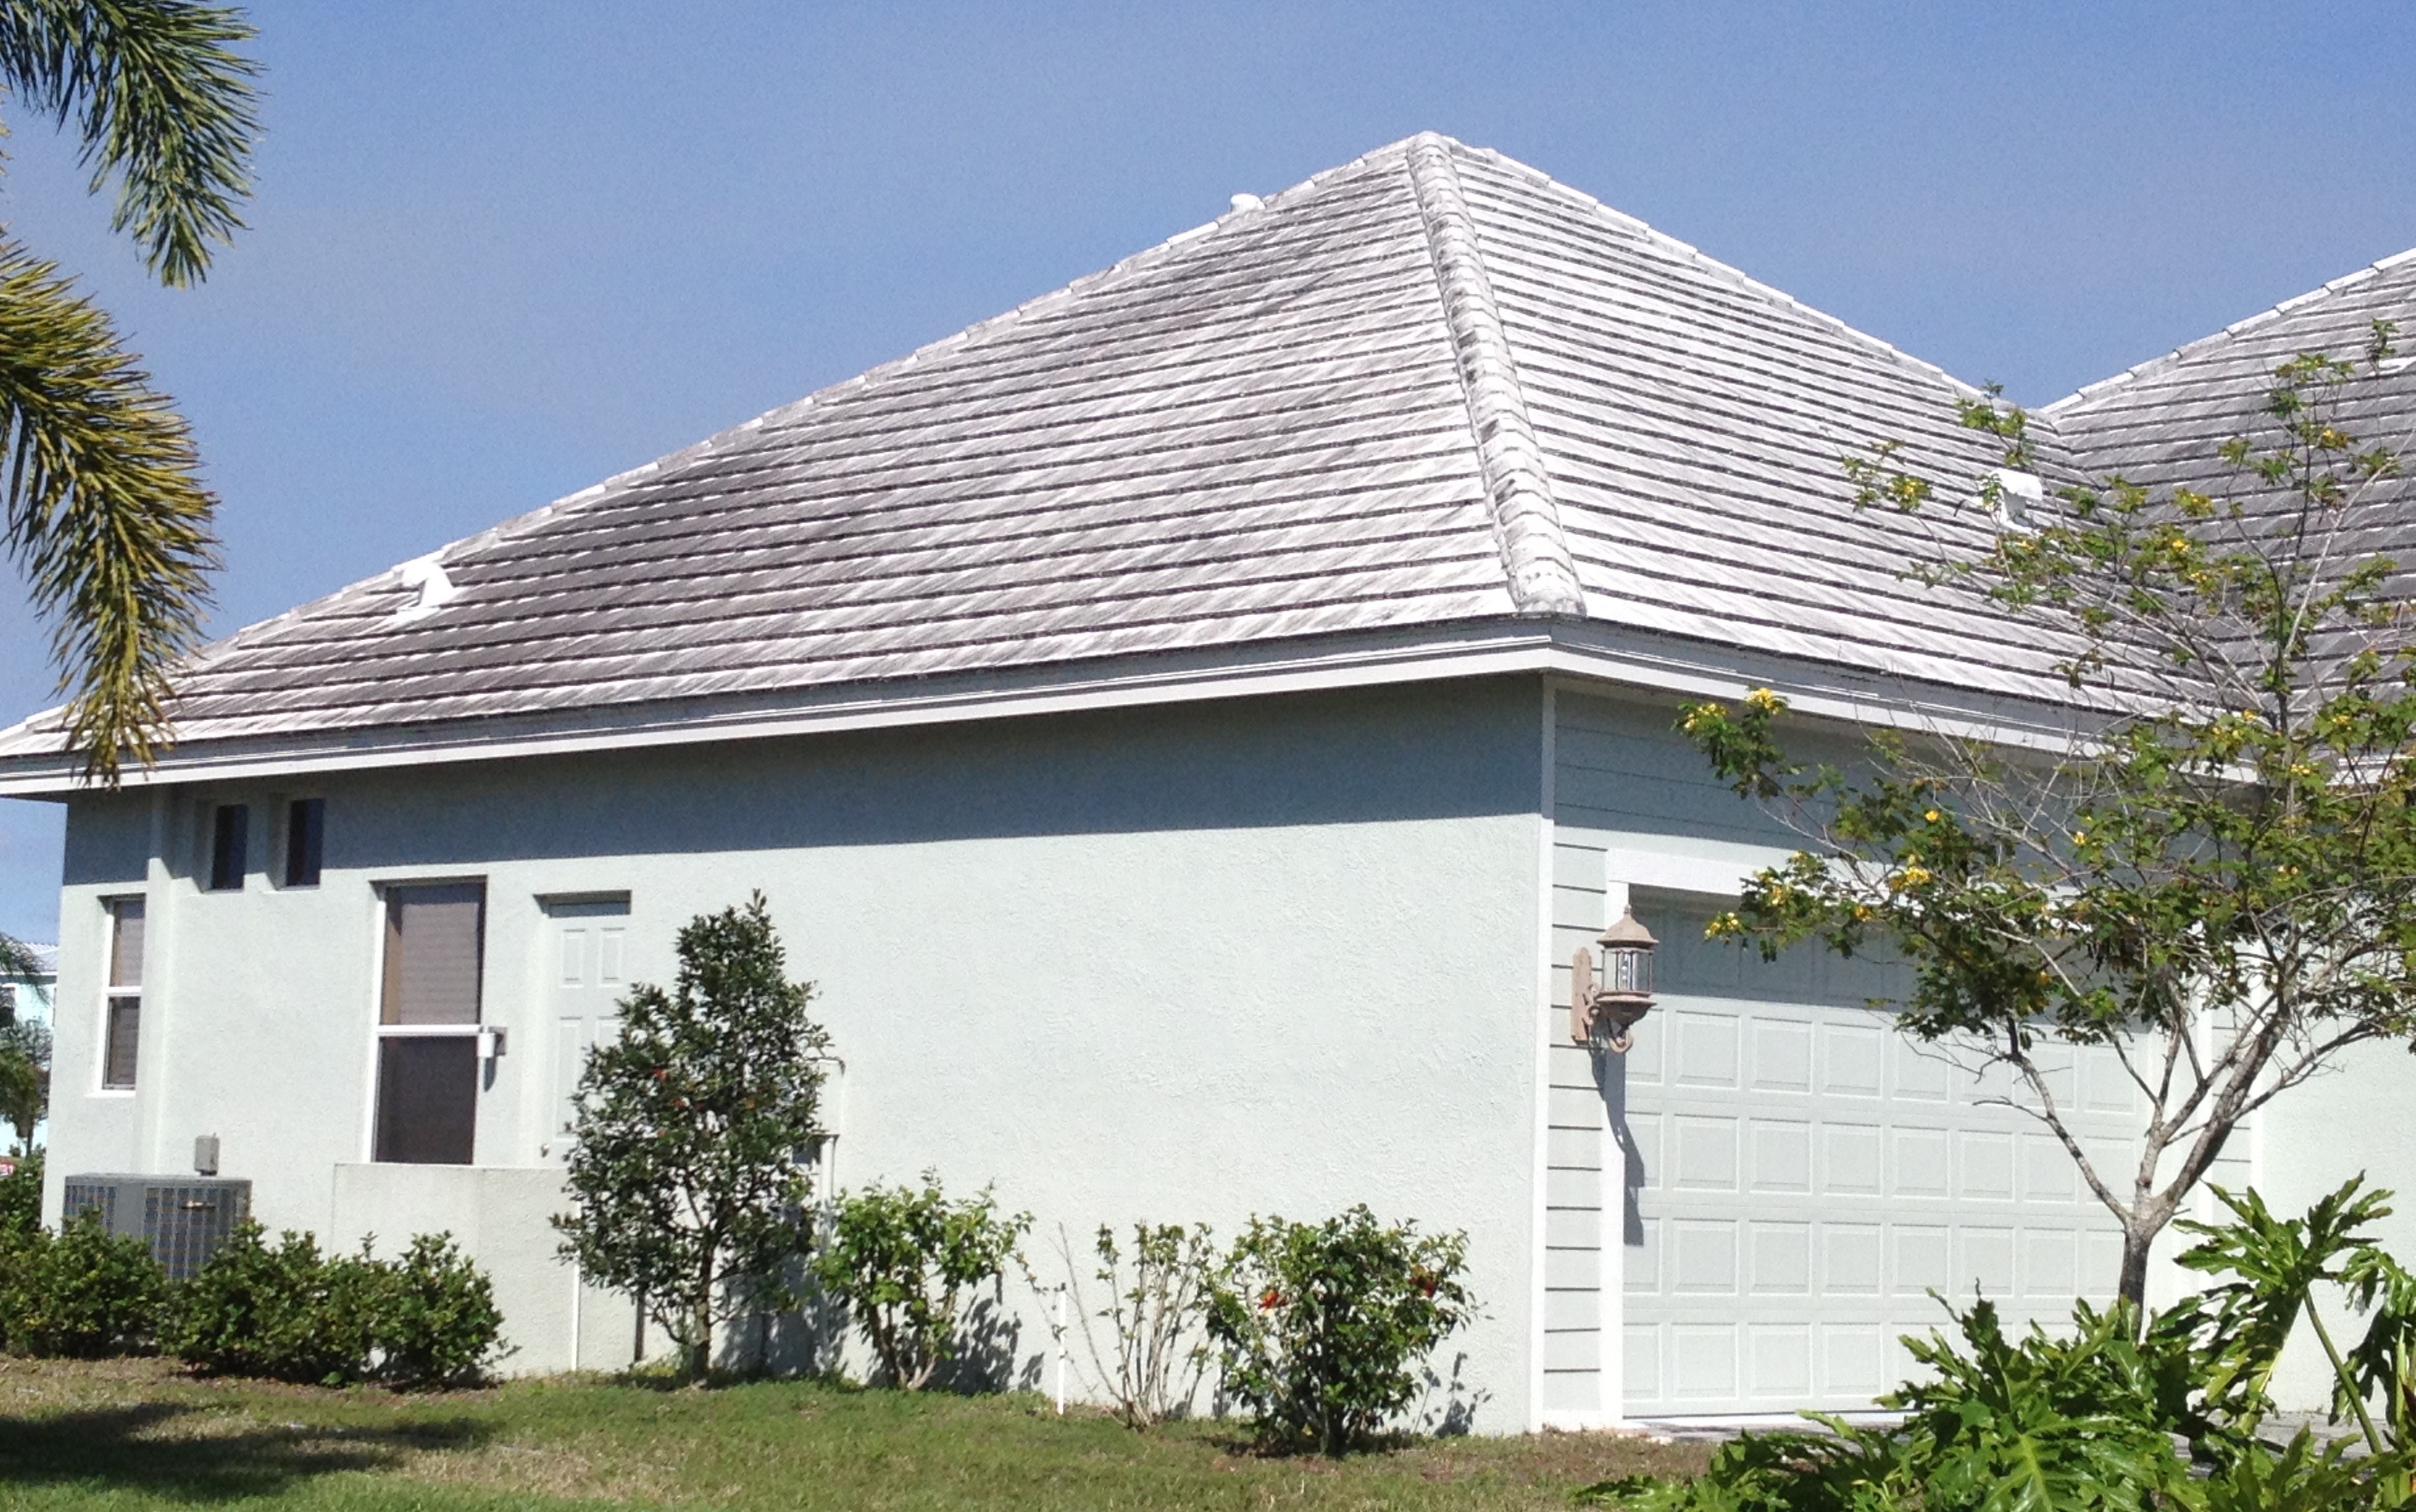 Roof Cleaning Pressure Washing And Pressure Cleaning